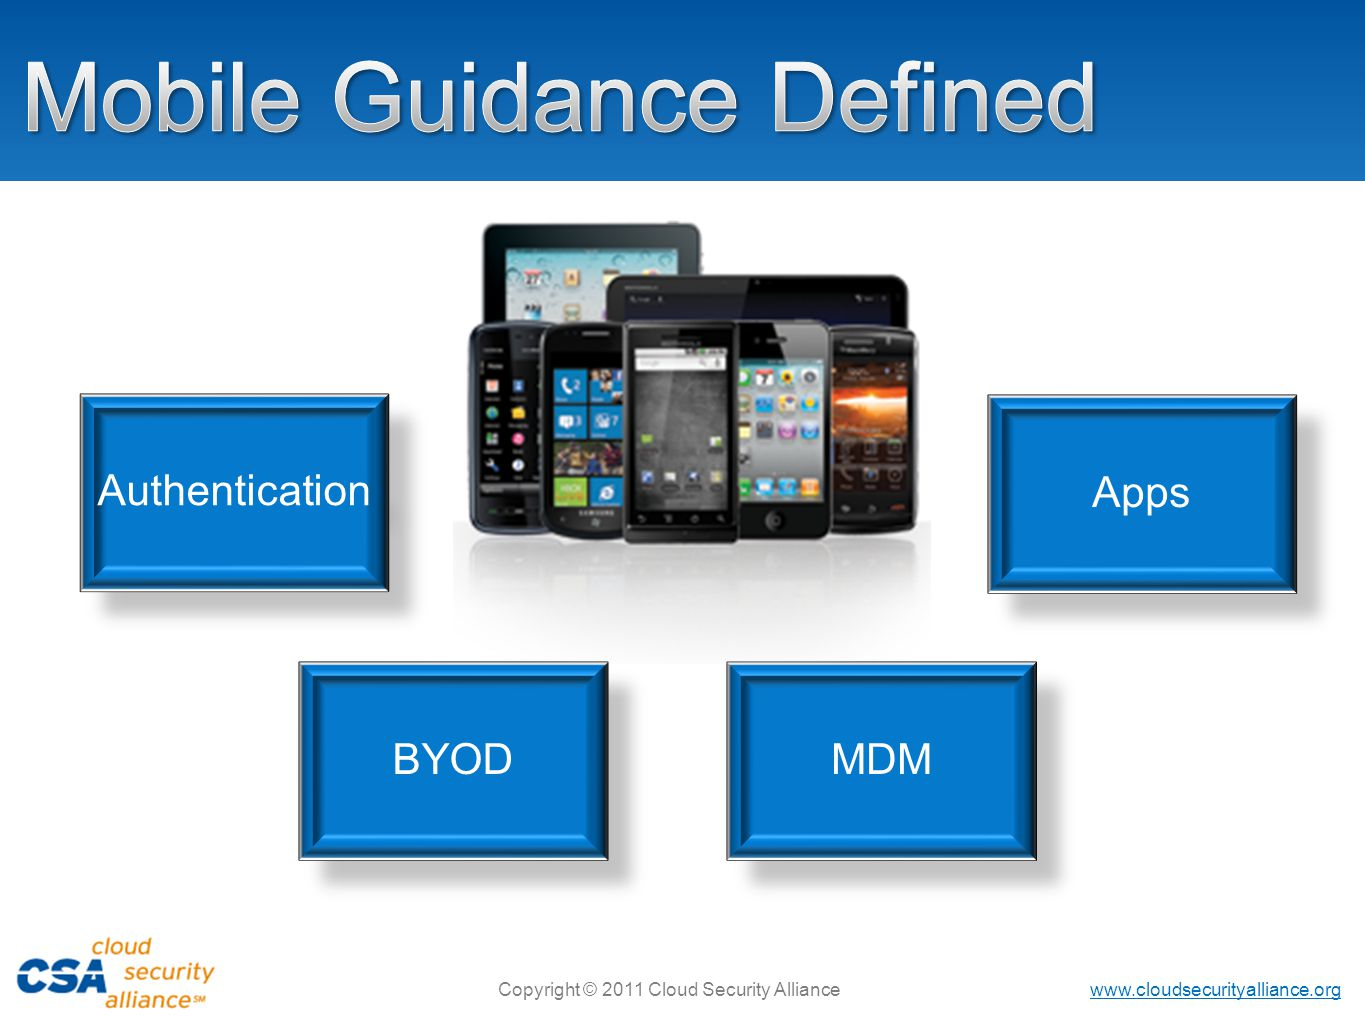 Mobile Guidance Defined